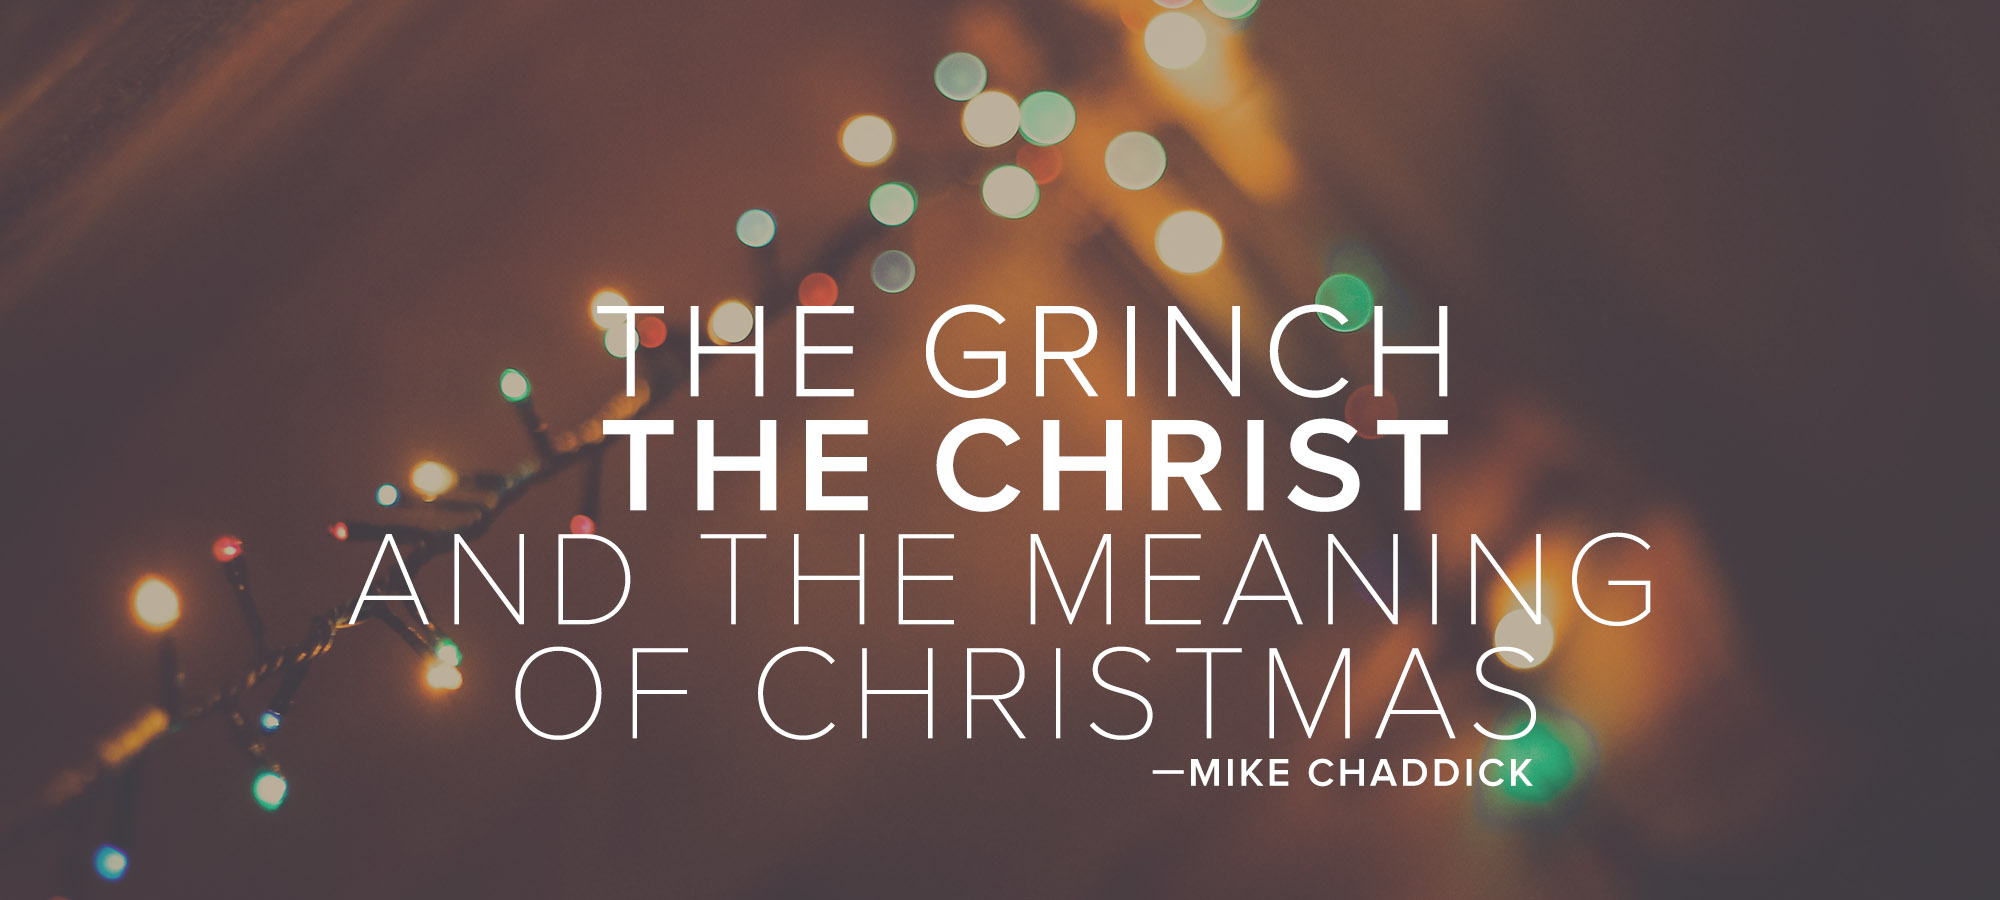 The Grinch, the Christ and the Meaning of Christmas